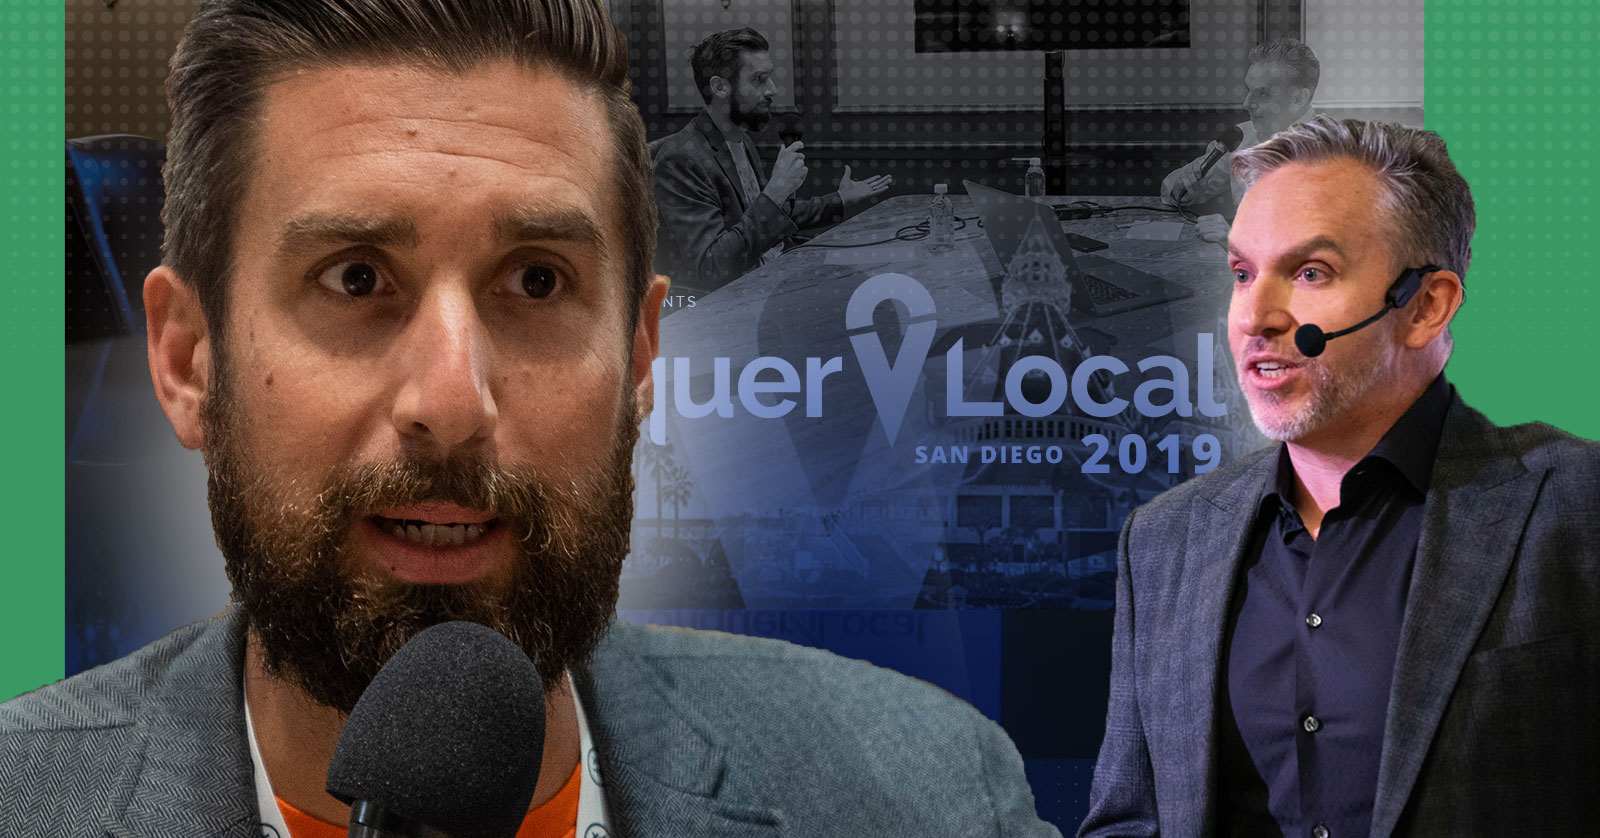 249: Leading with Value, with Nick Roshon | Highlights from Conquer Local 2019